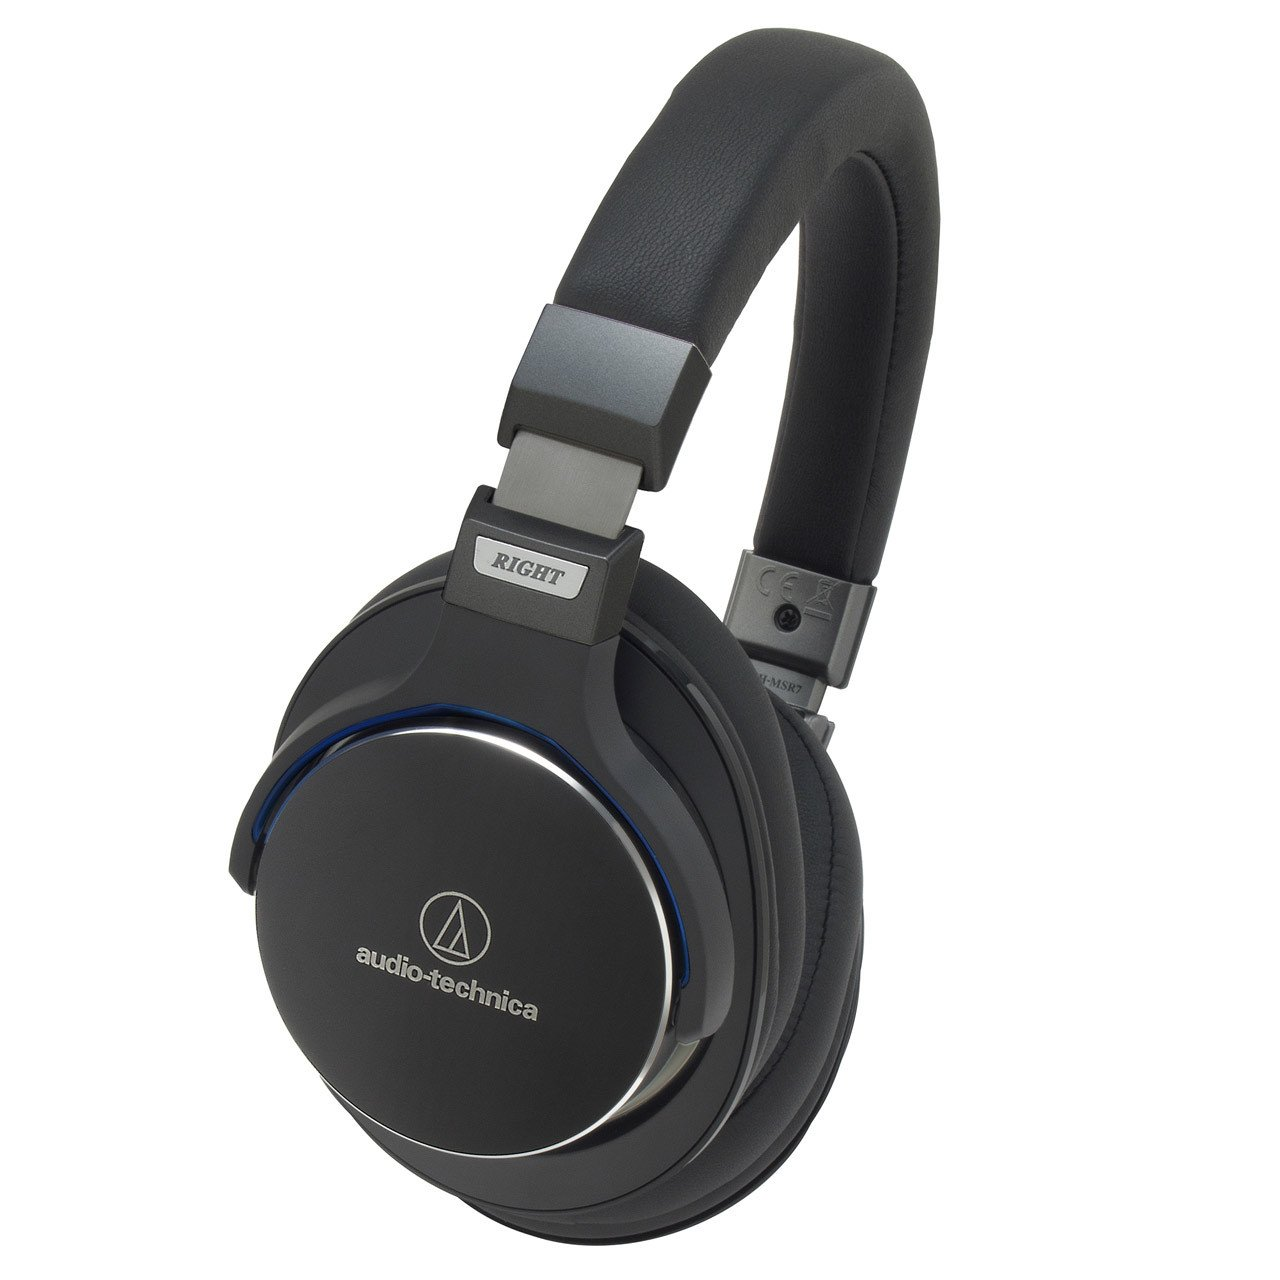 Audio-Technica ATH-MSR7 Hi-Res Headphones With Smartphone Control